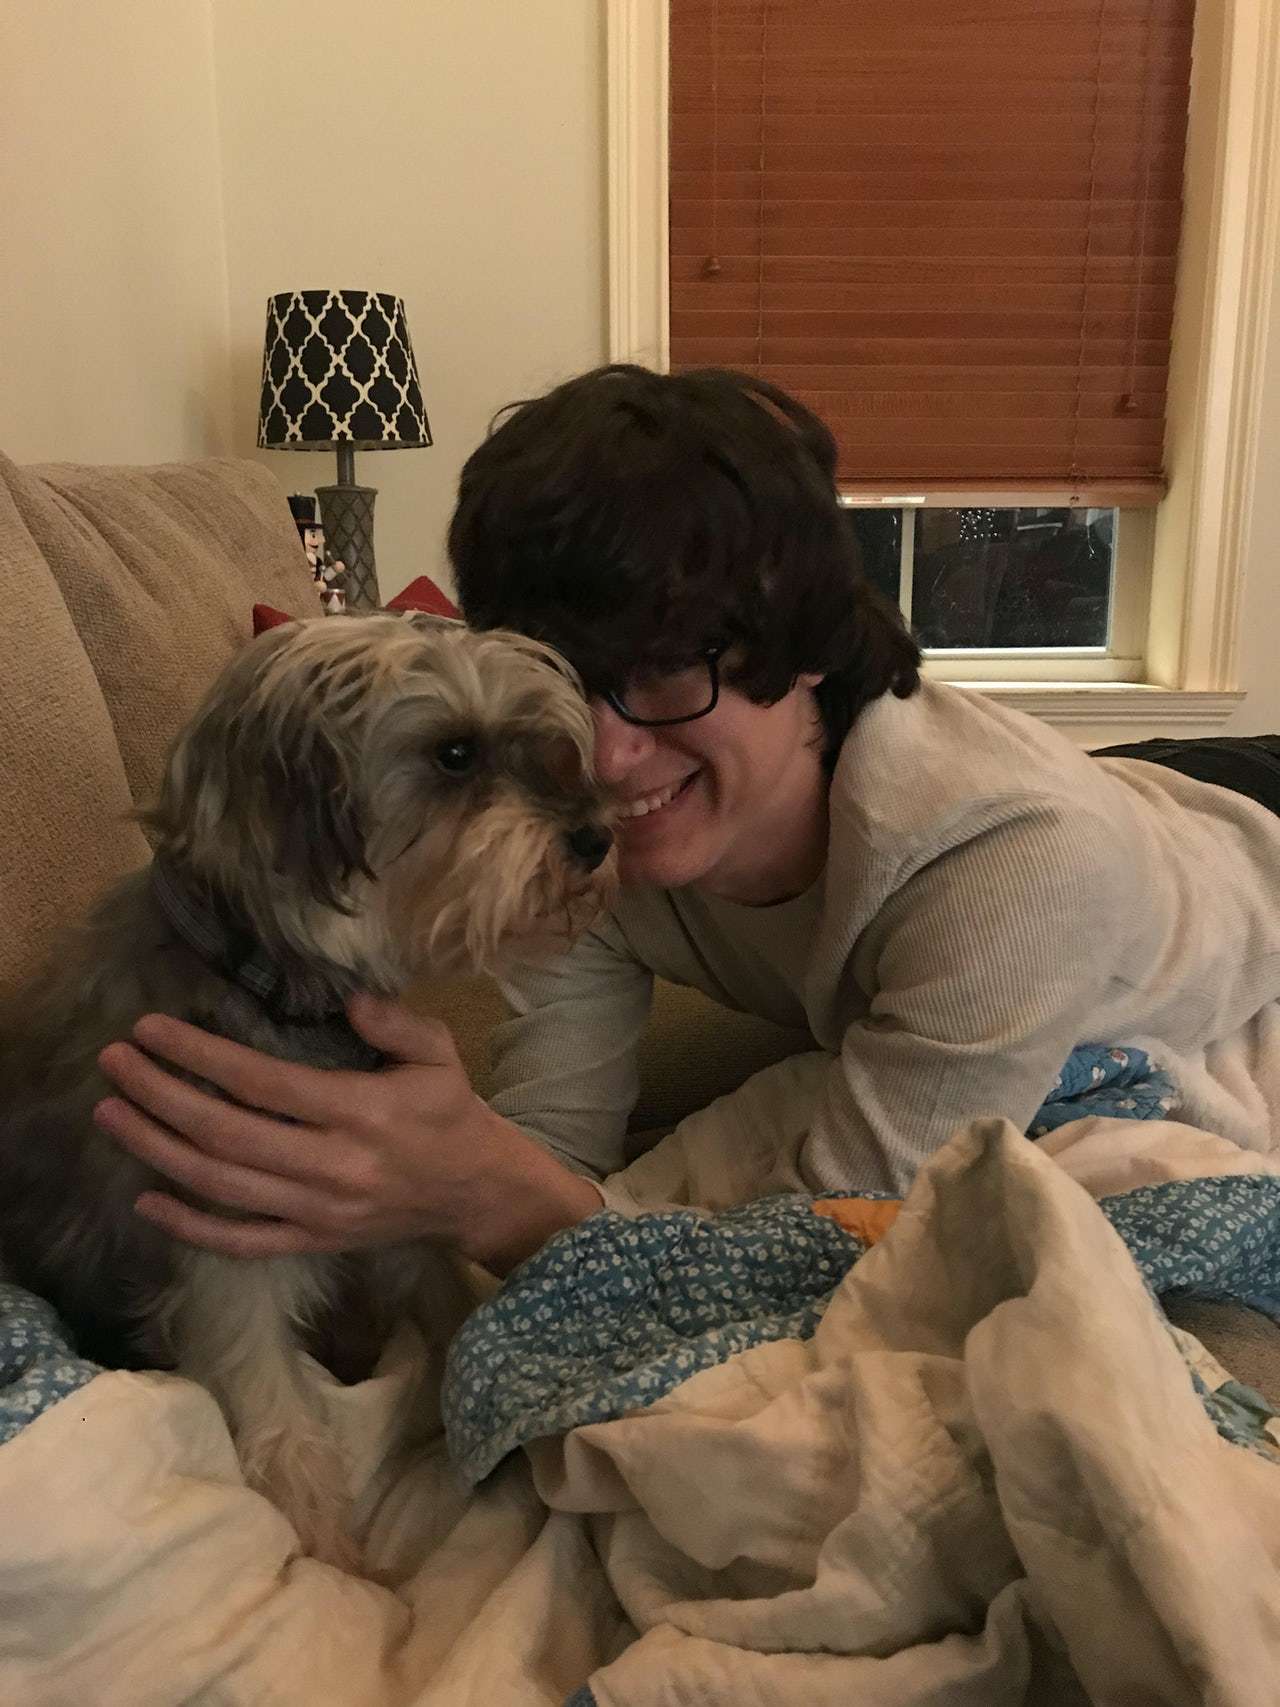 Josh and his family's dog, Andy, after his release from prison and before his stay in rehab.